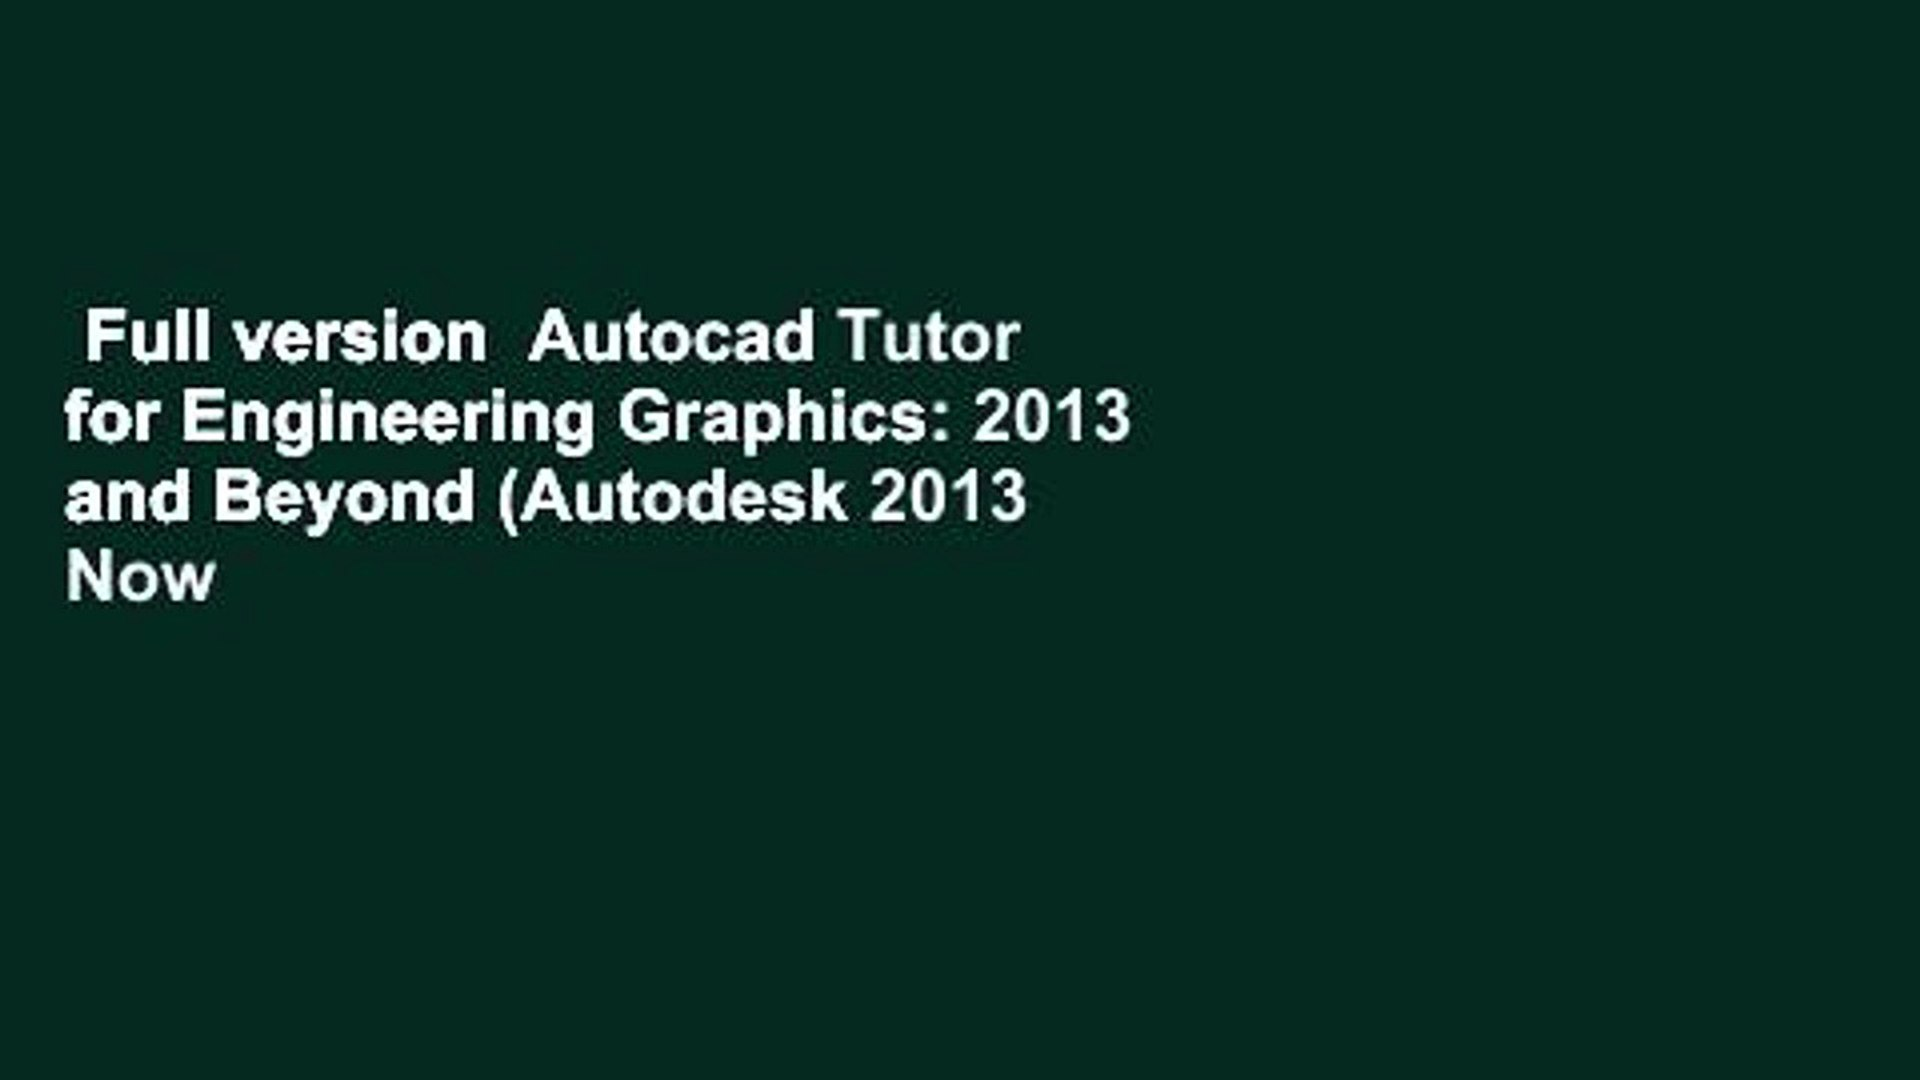 Full version  Autocad Tutor for Engineering Graphics: 2013 and Beyond (Autodesk 2013 Now